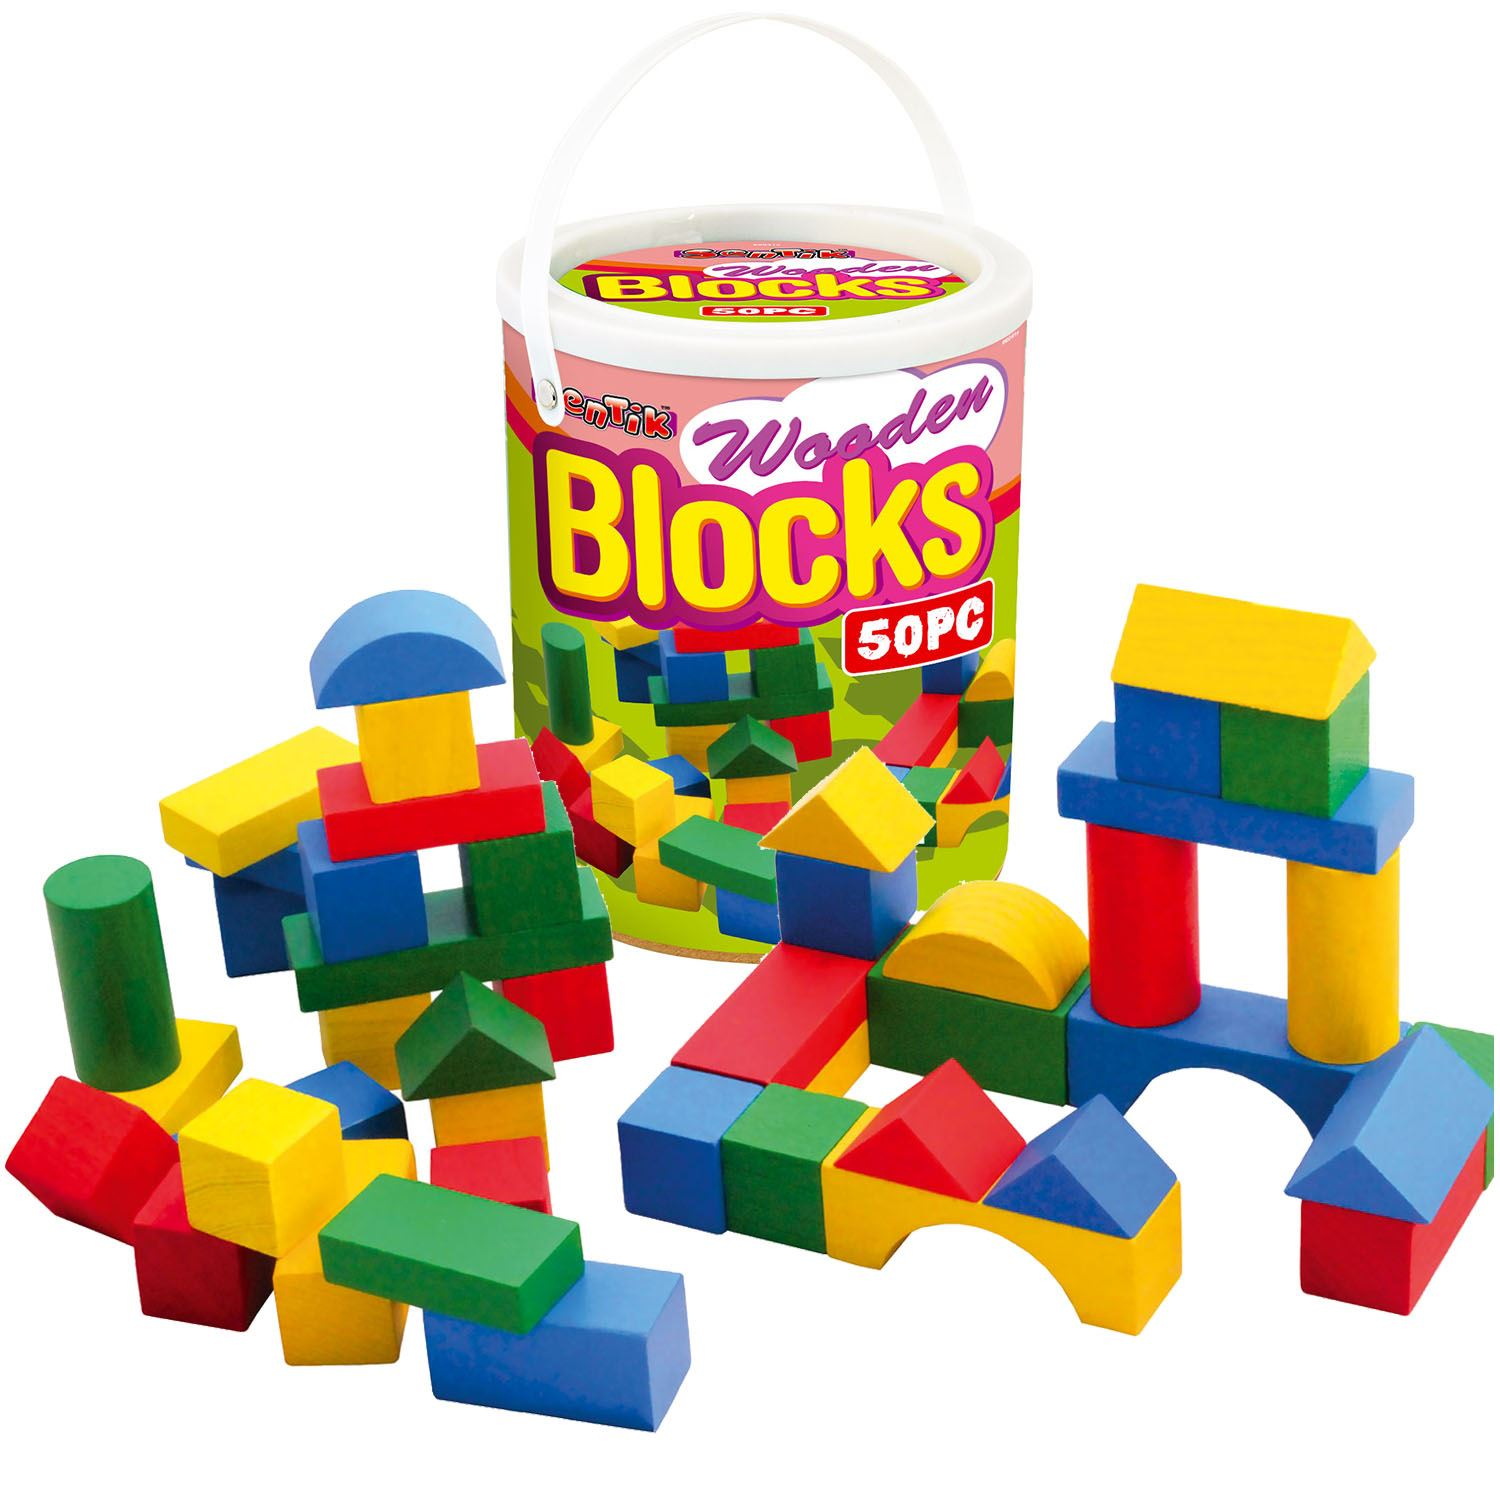 Childrens Wooden Building Blocks Kids Construction Toy Bricks Set